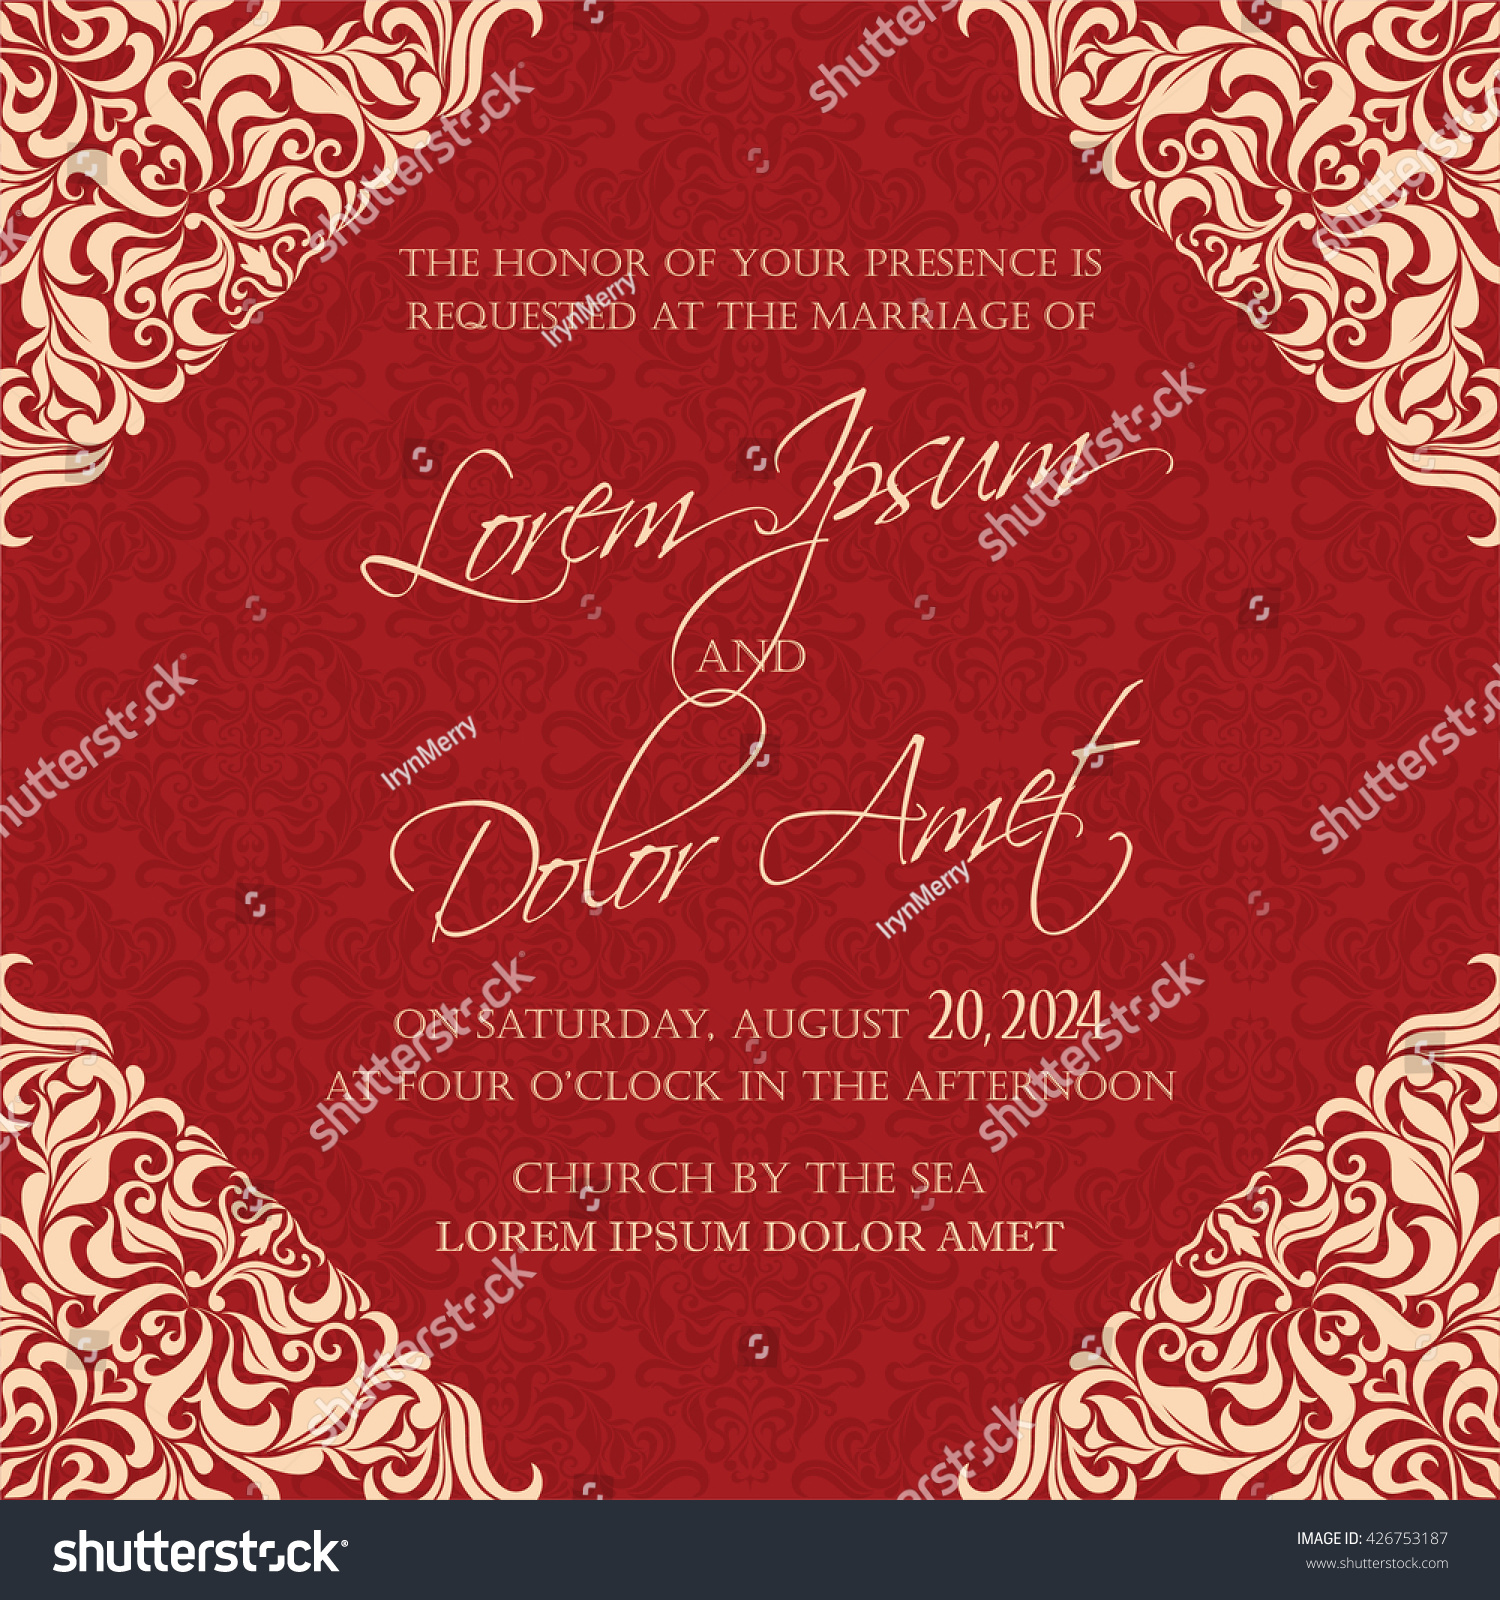 Red Vintage Wedding Invitation Card Stock Vector (Royalty Free ...